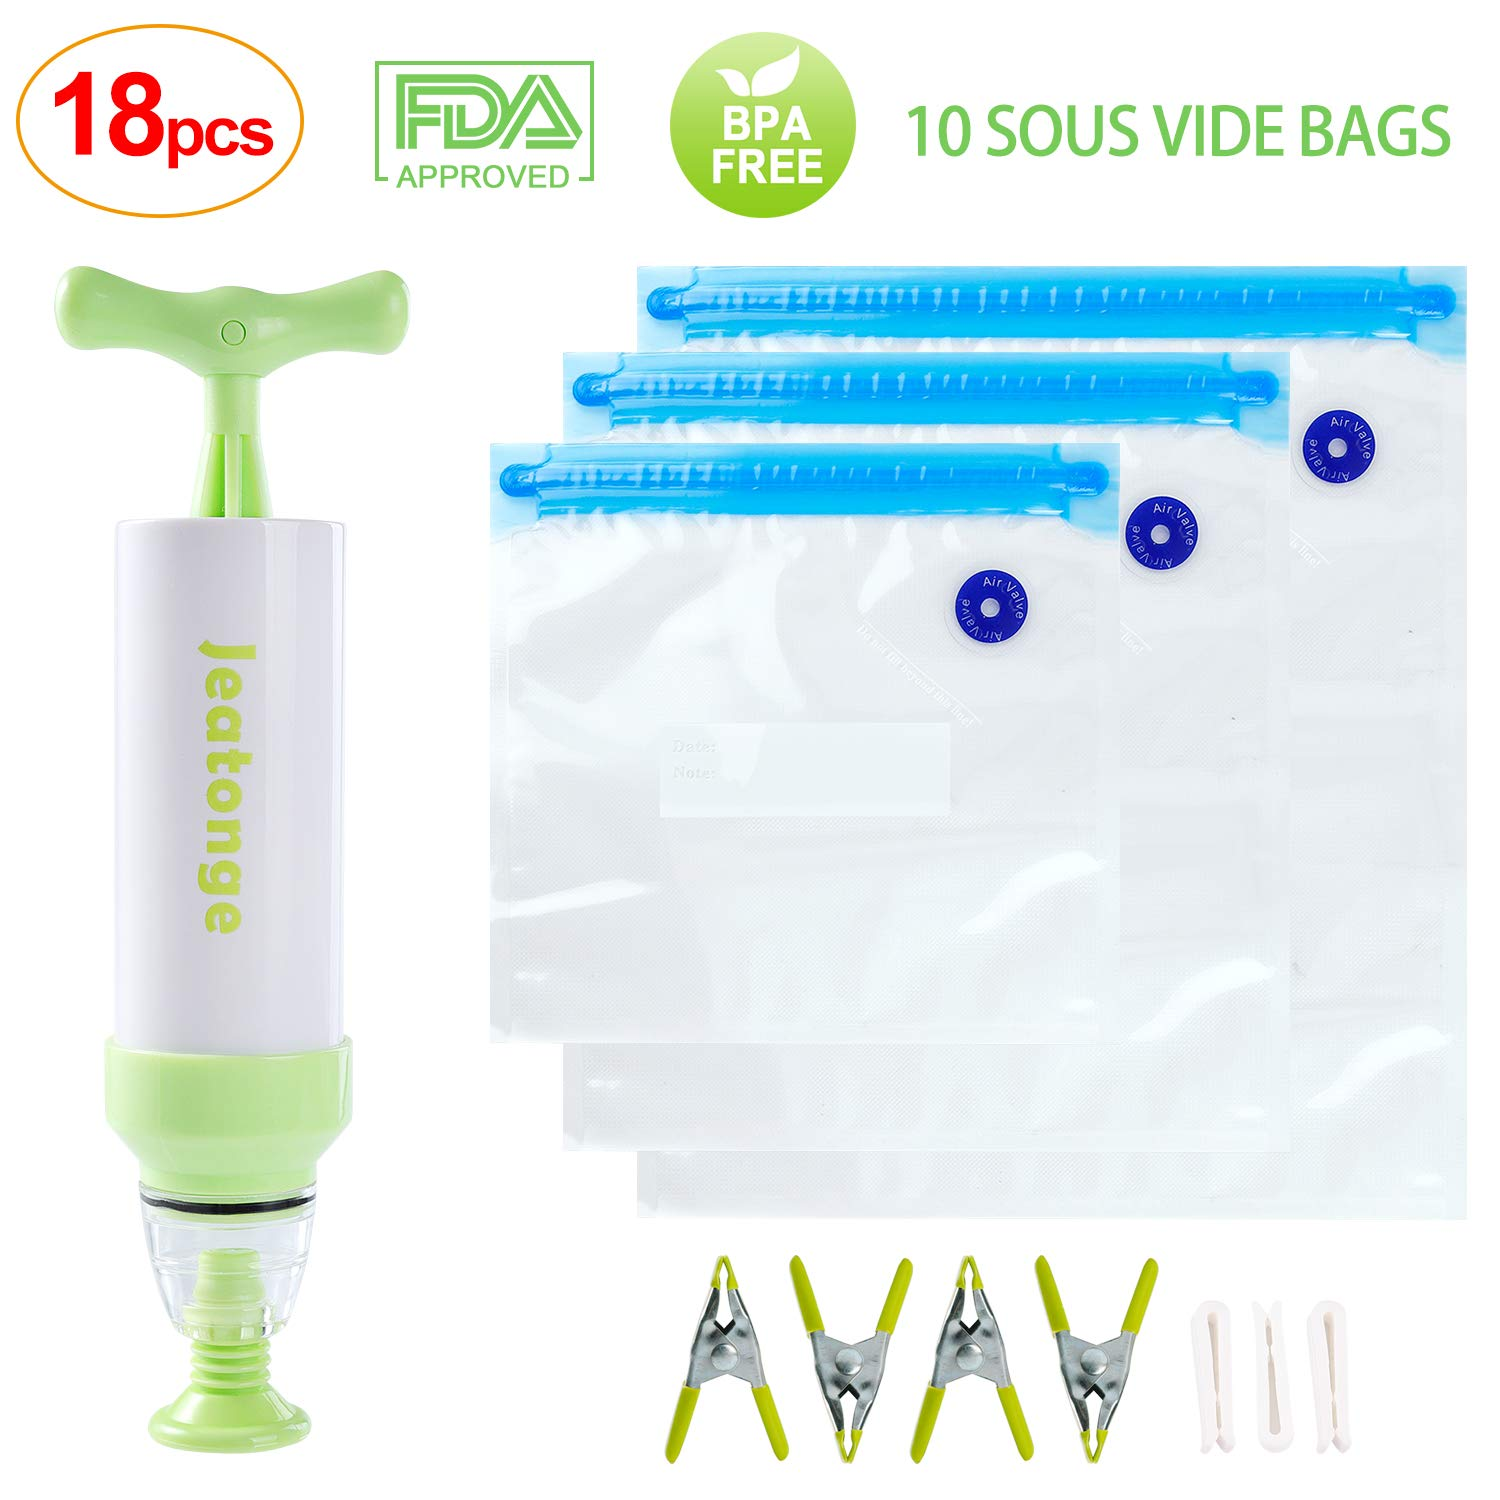 Sous Vide Bags Kit for Anova Cookers 10 Reusable Food Vacuum Sealed Bags, 1 Hand Pump, 3 Bag Sealing Clips and 4 Sous Vide Clips Jeatonge